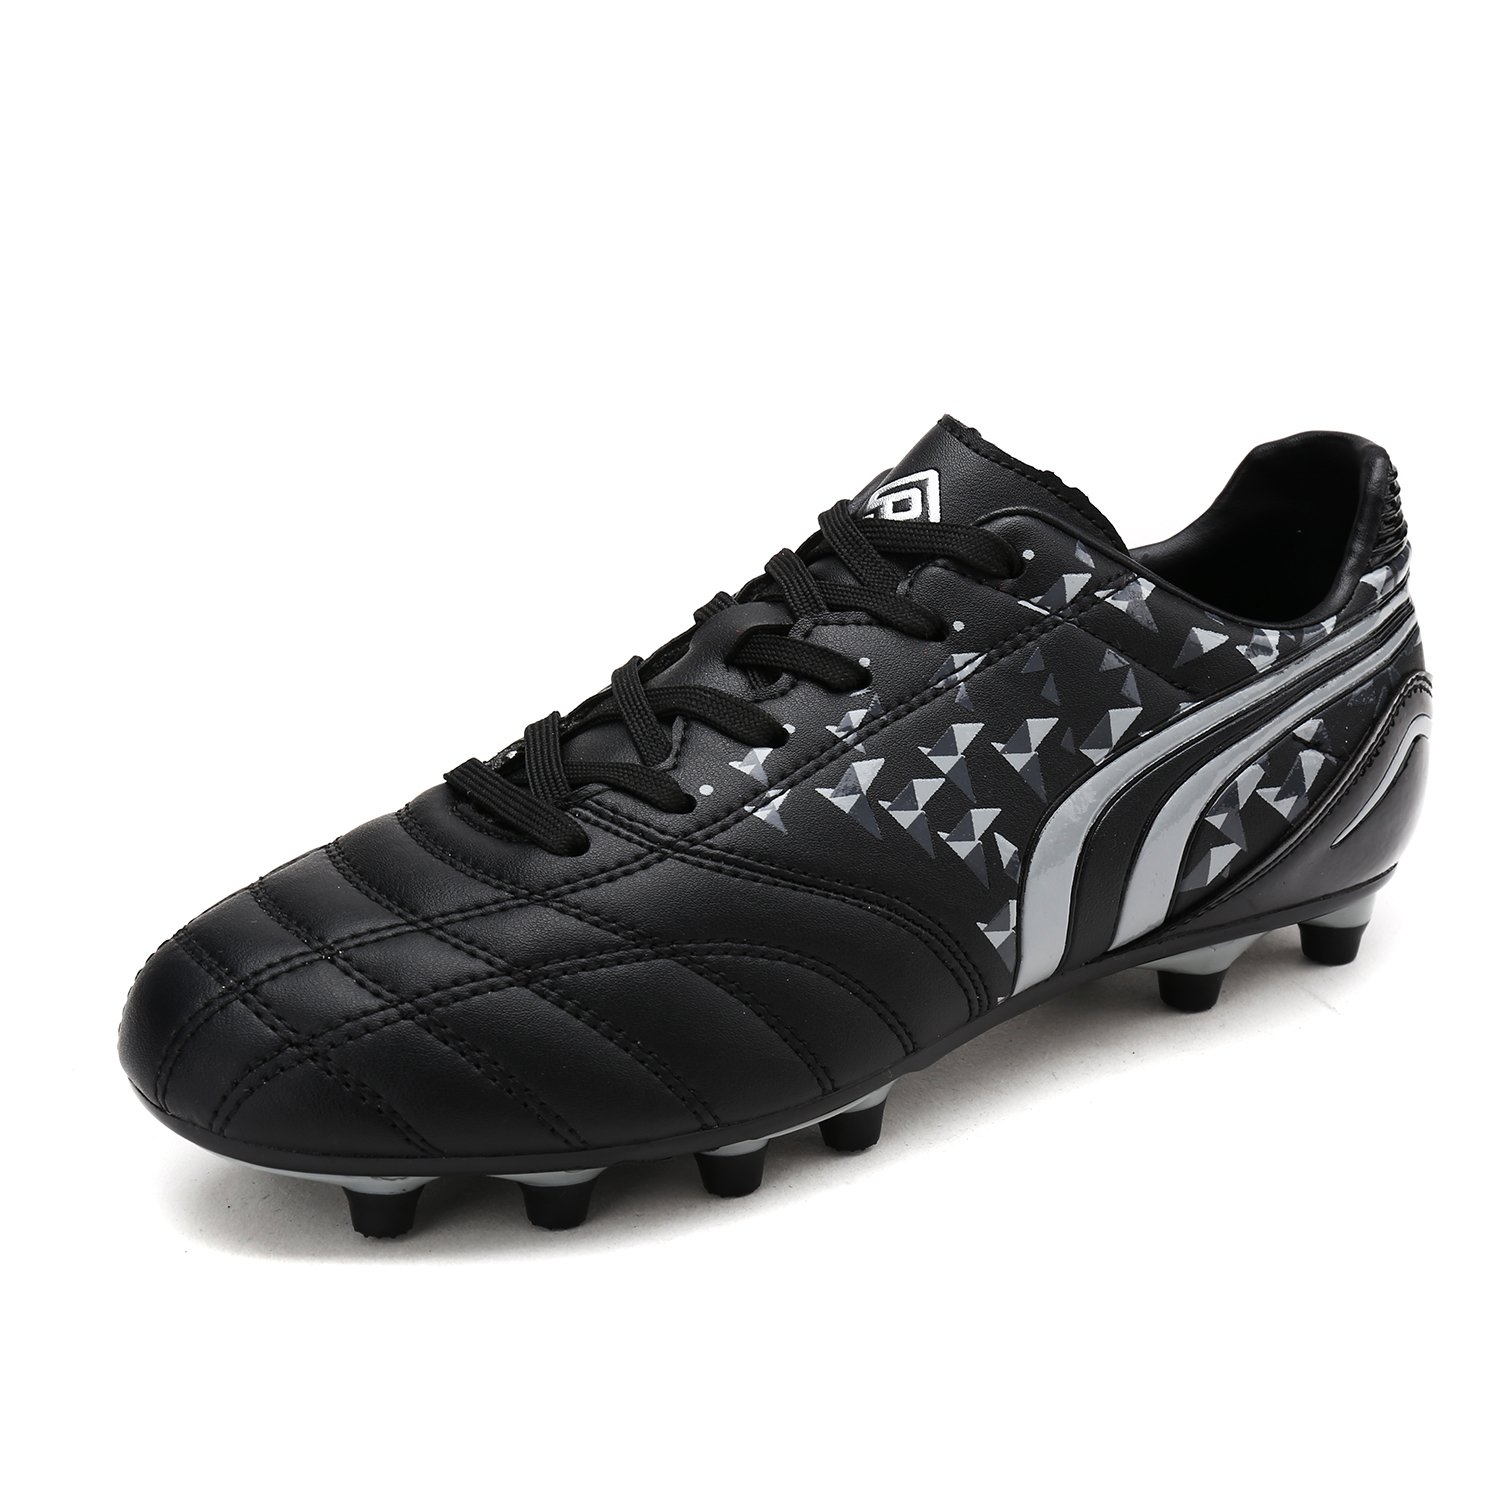 DREAM PAIRS Men's 160860-M Black Grey Cleats Football Soccer Shoes - 10.5 M US by DREAM PAIRS